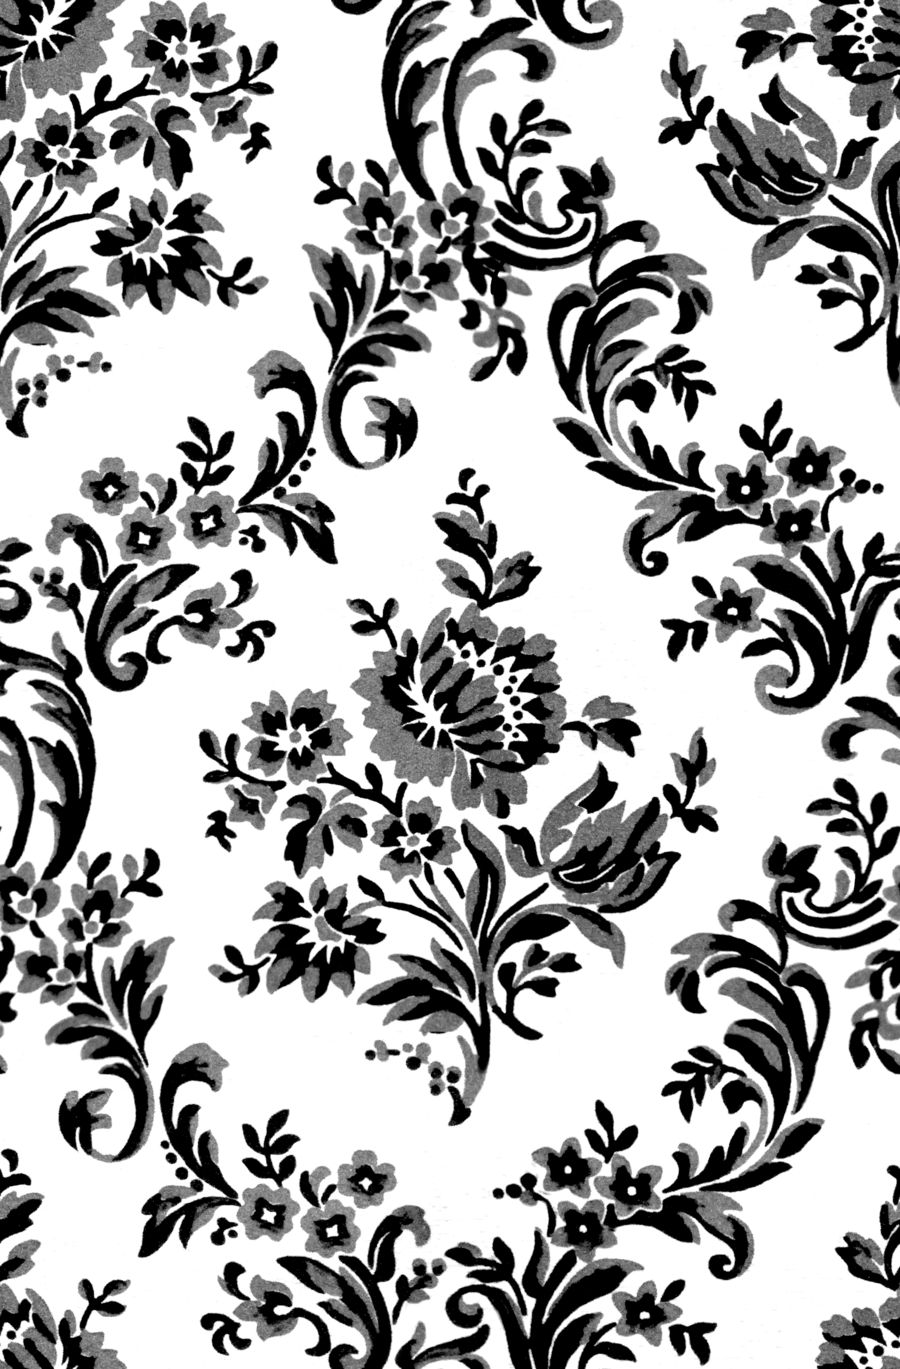 Vintage Seamless Black And White Floral Pattern. Vector ...   Black Floral Vintage Pattern